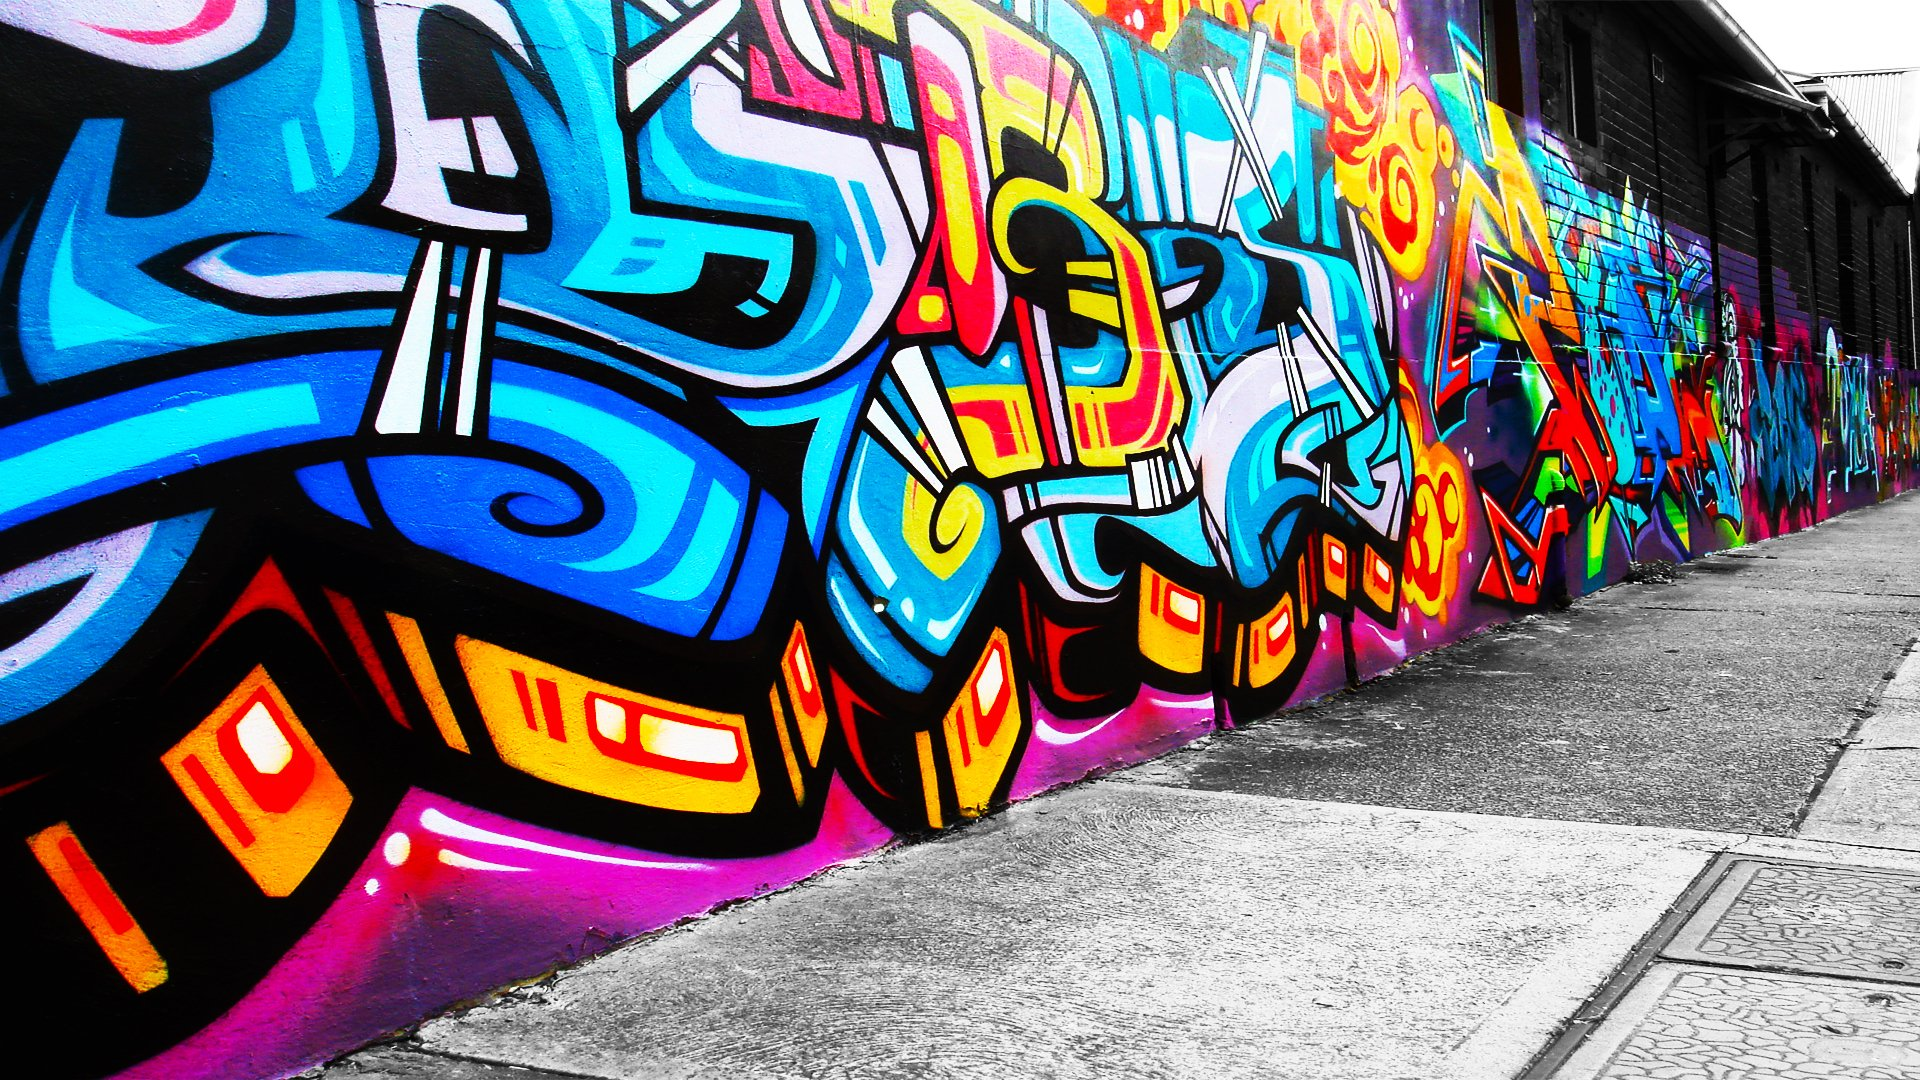 Home Digital Art Graffiti Background 1920x1080